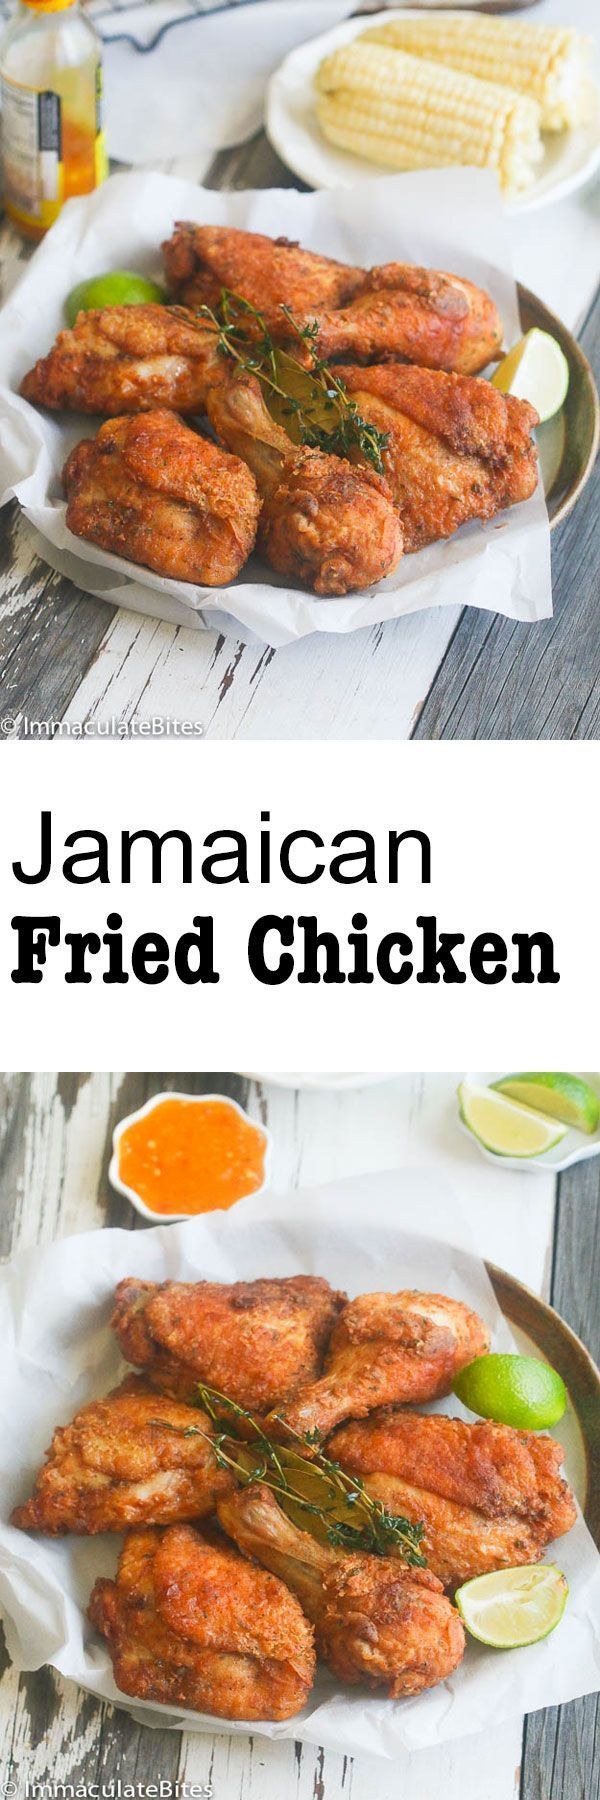 Jamaican Fried Chicken –Golden brown crispy crunchy Chicken. Highly spiced, decadently tender, Bad to the bone and Finger lickin' good! Comfort food at it's BEST. Anyone care for some fried Chicken? Every now and then you you've just got to indulge in som